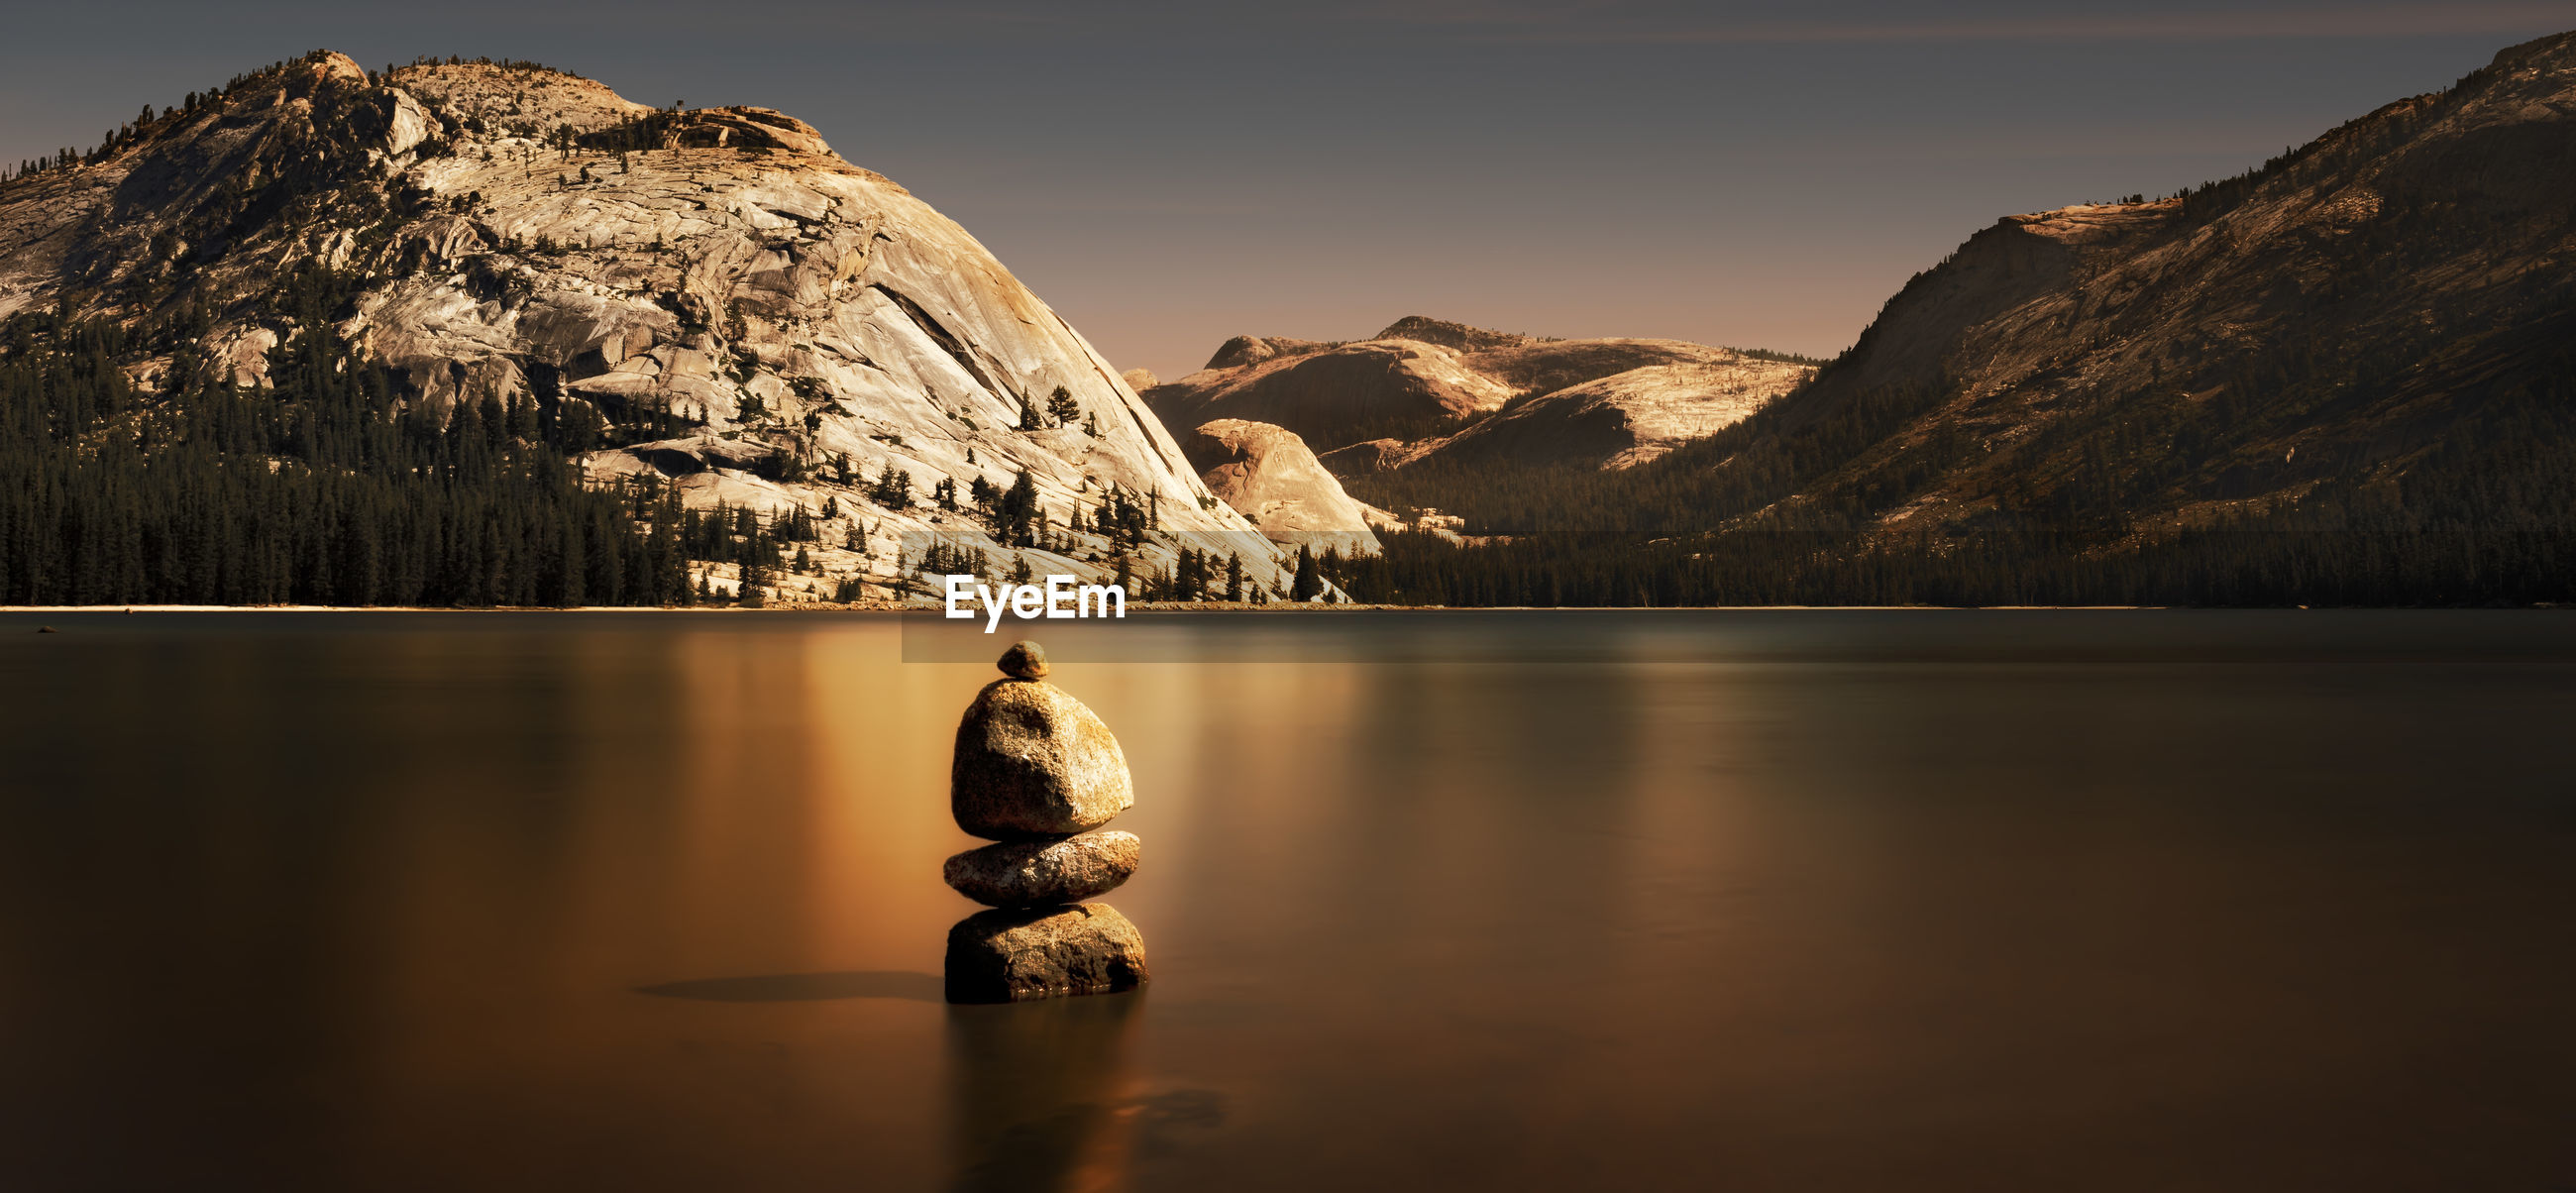 Stacked stones on calm lake against mountains at yosemite national park